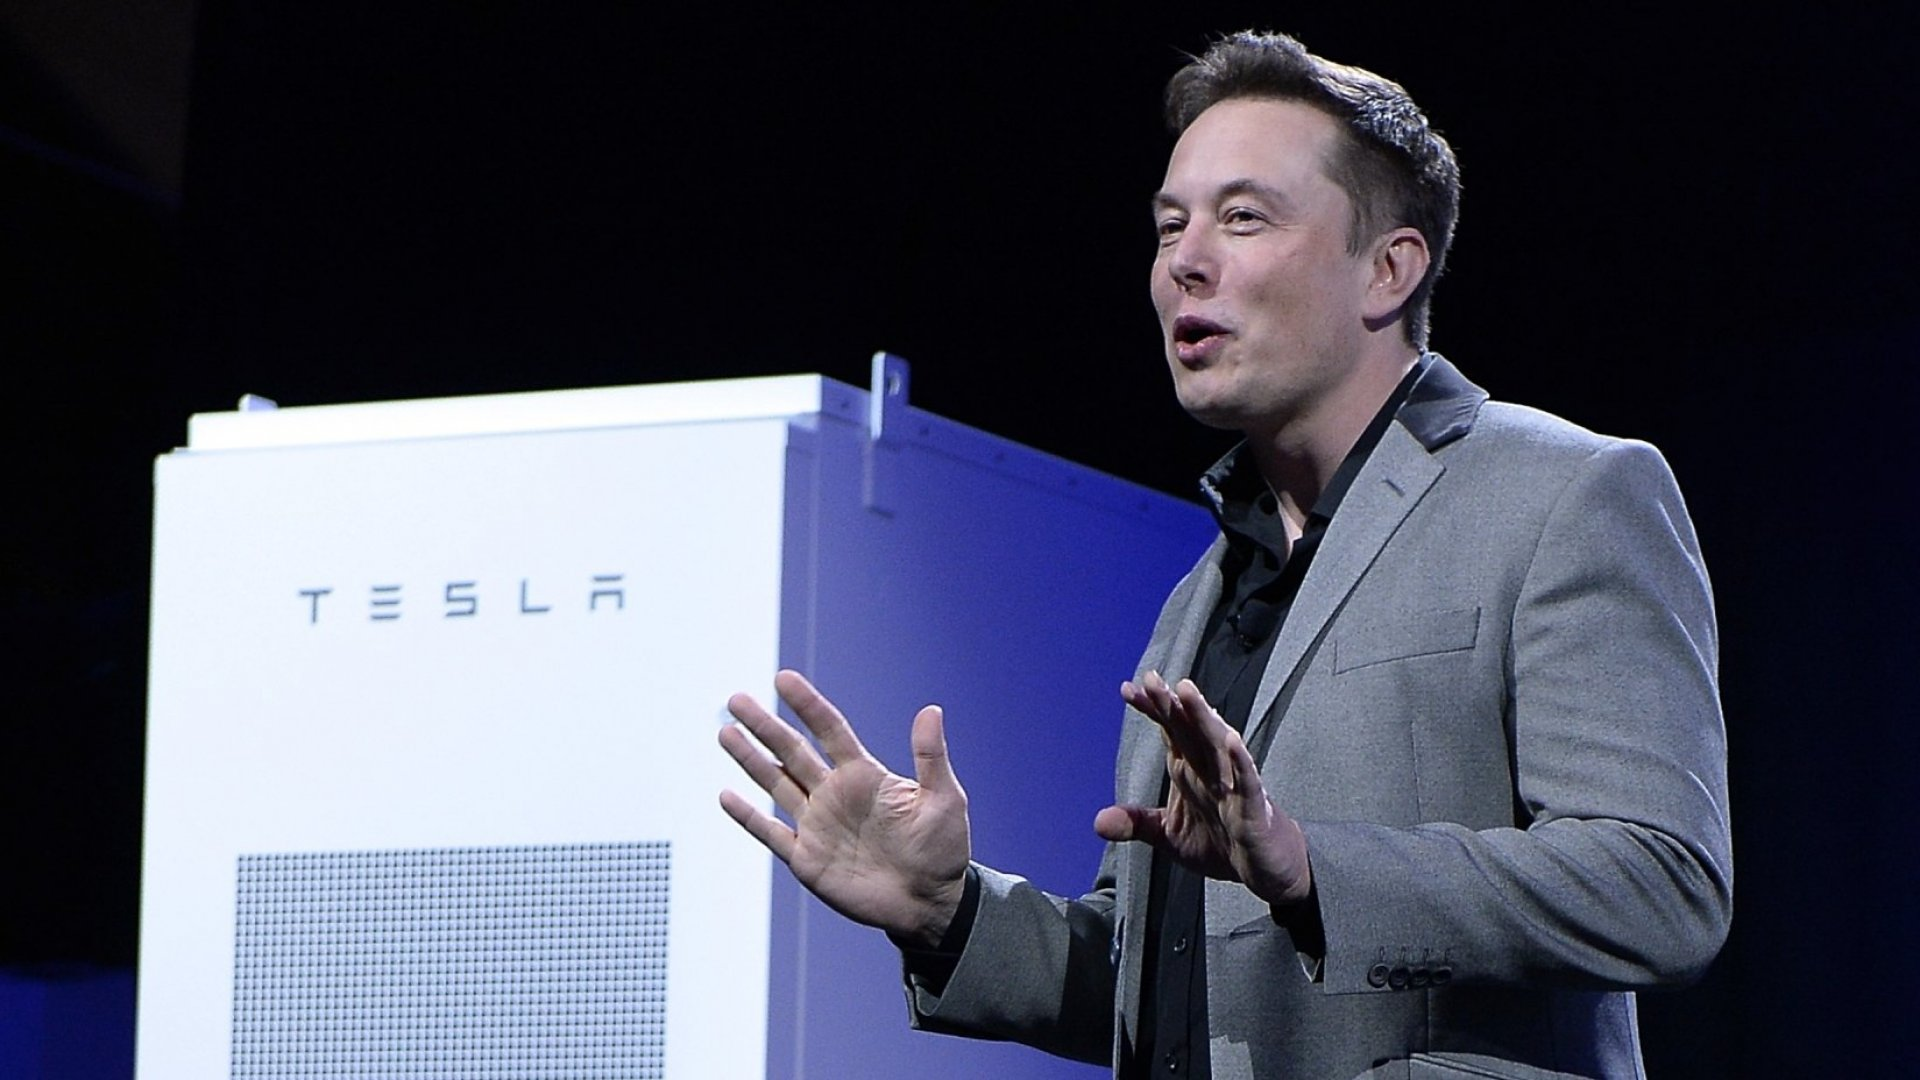 Tesla Opens World's Largest Battery Plant in California